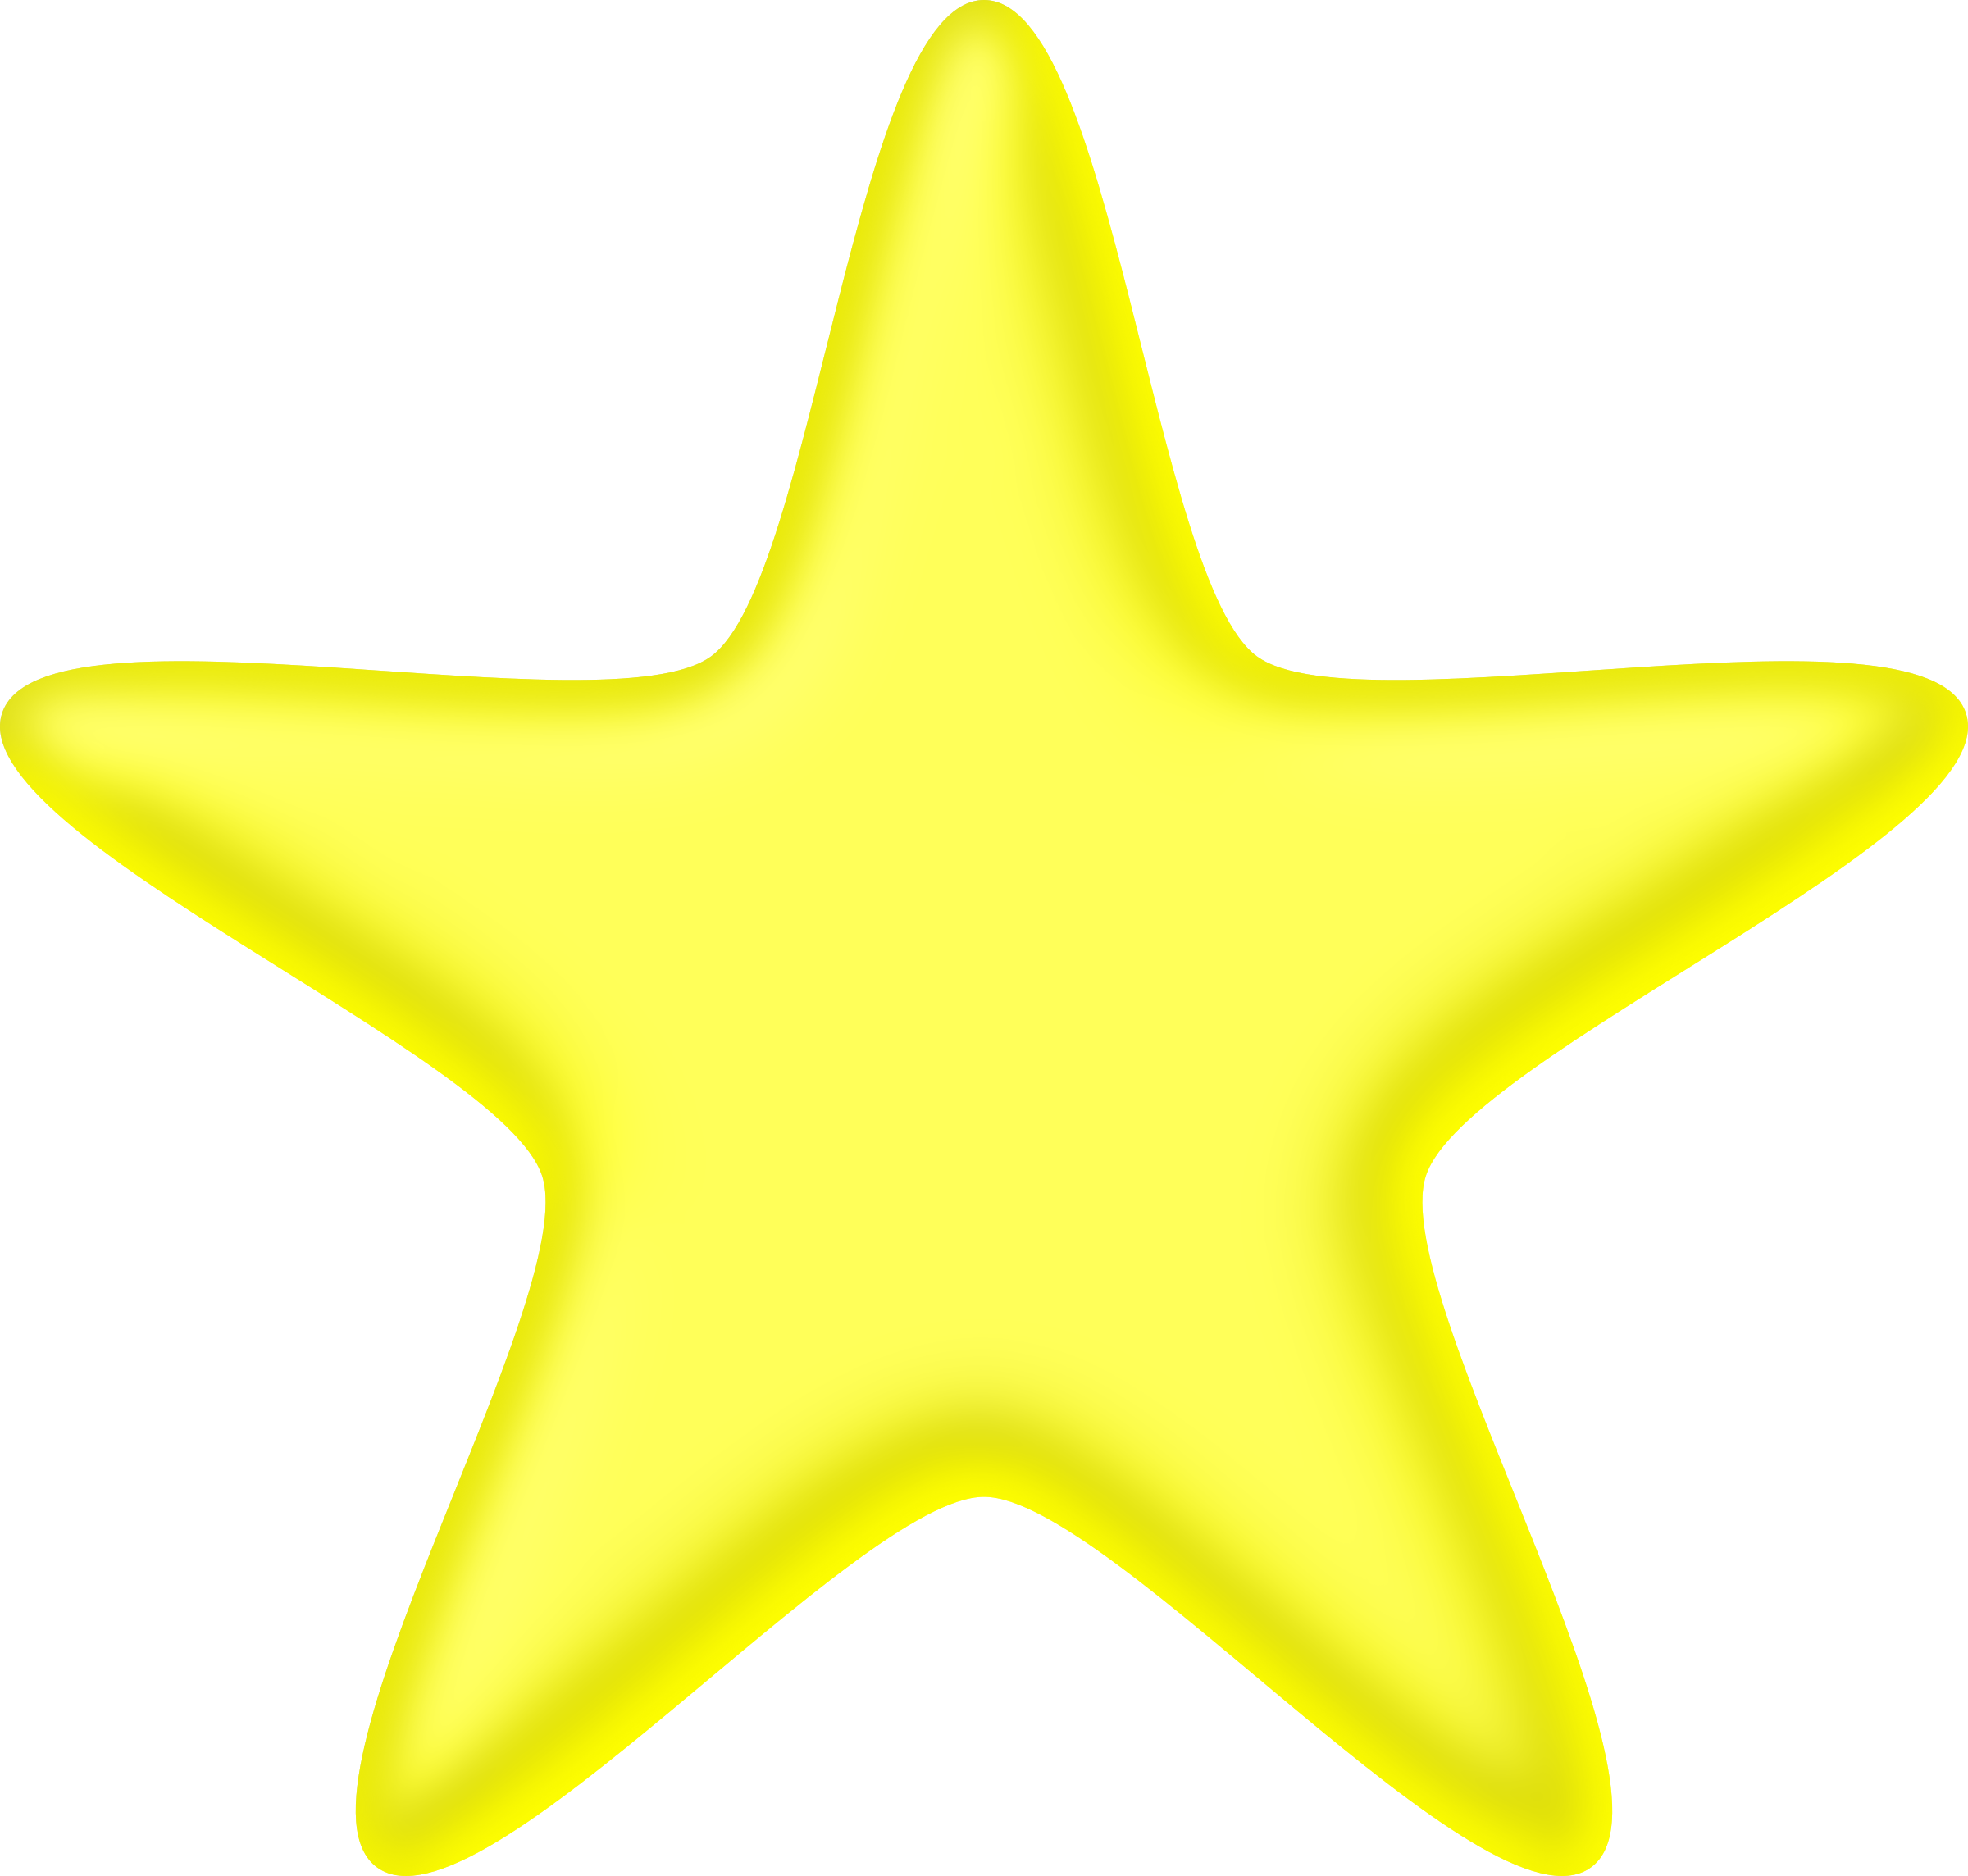 3D yellow star by Firkin